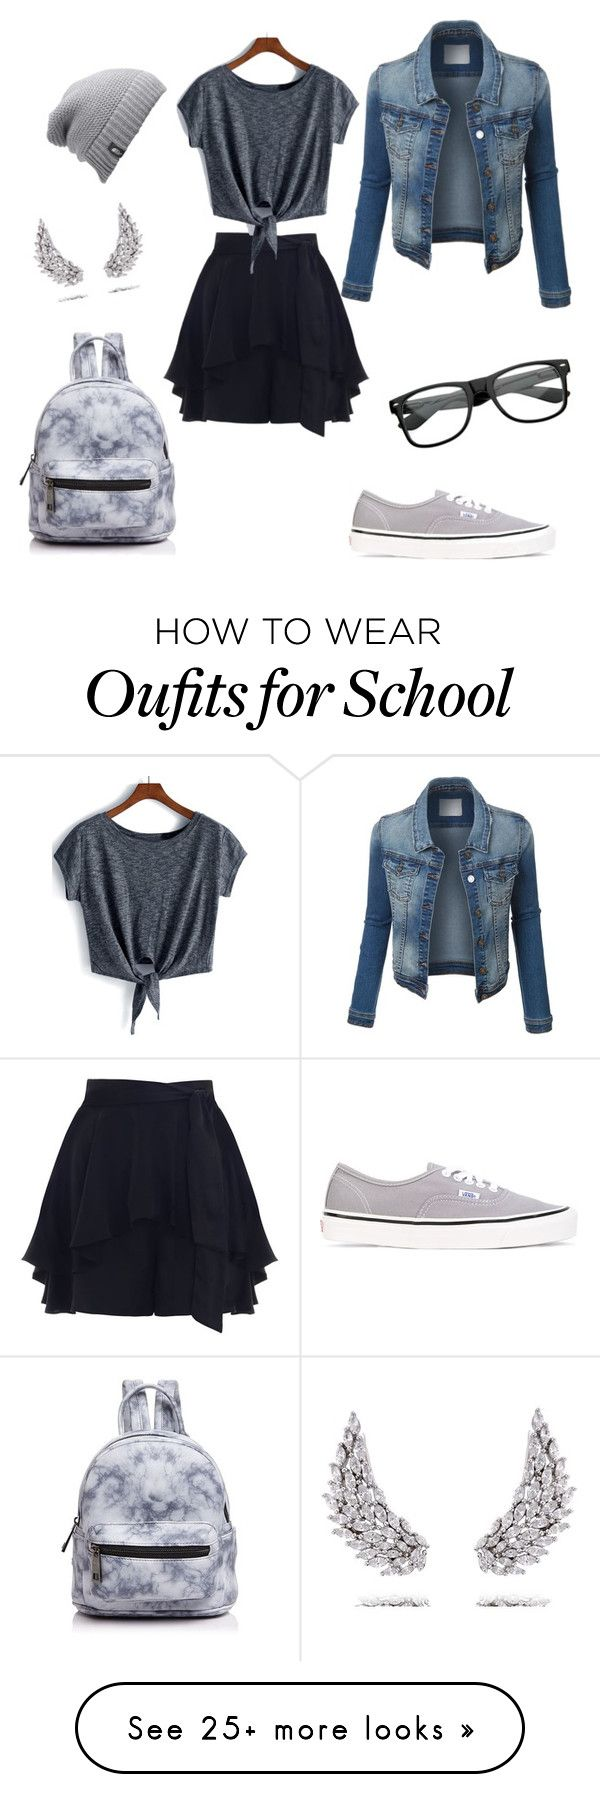 """""""School #1"""" by timazohra on Polyvore featuring Apples & Figs, Zimmermann, The North Face, Vans, Street Level and ZeroUV"""